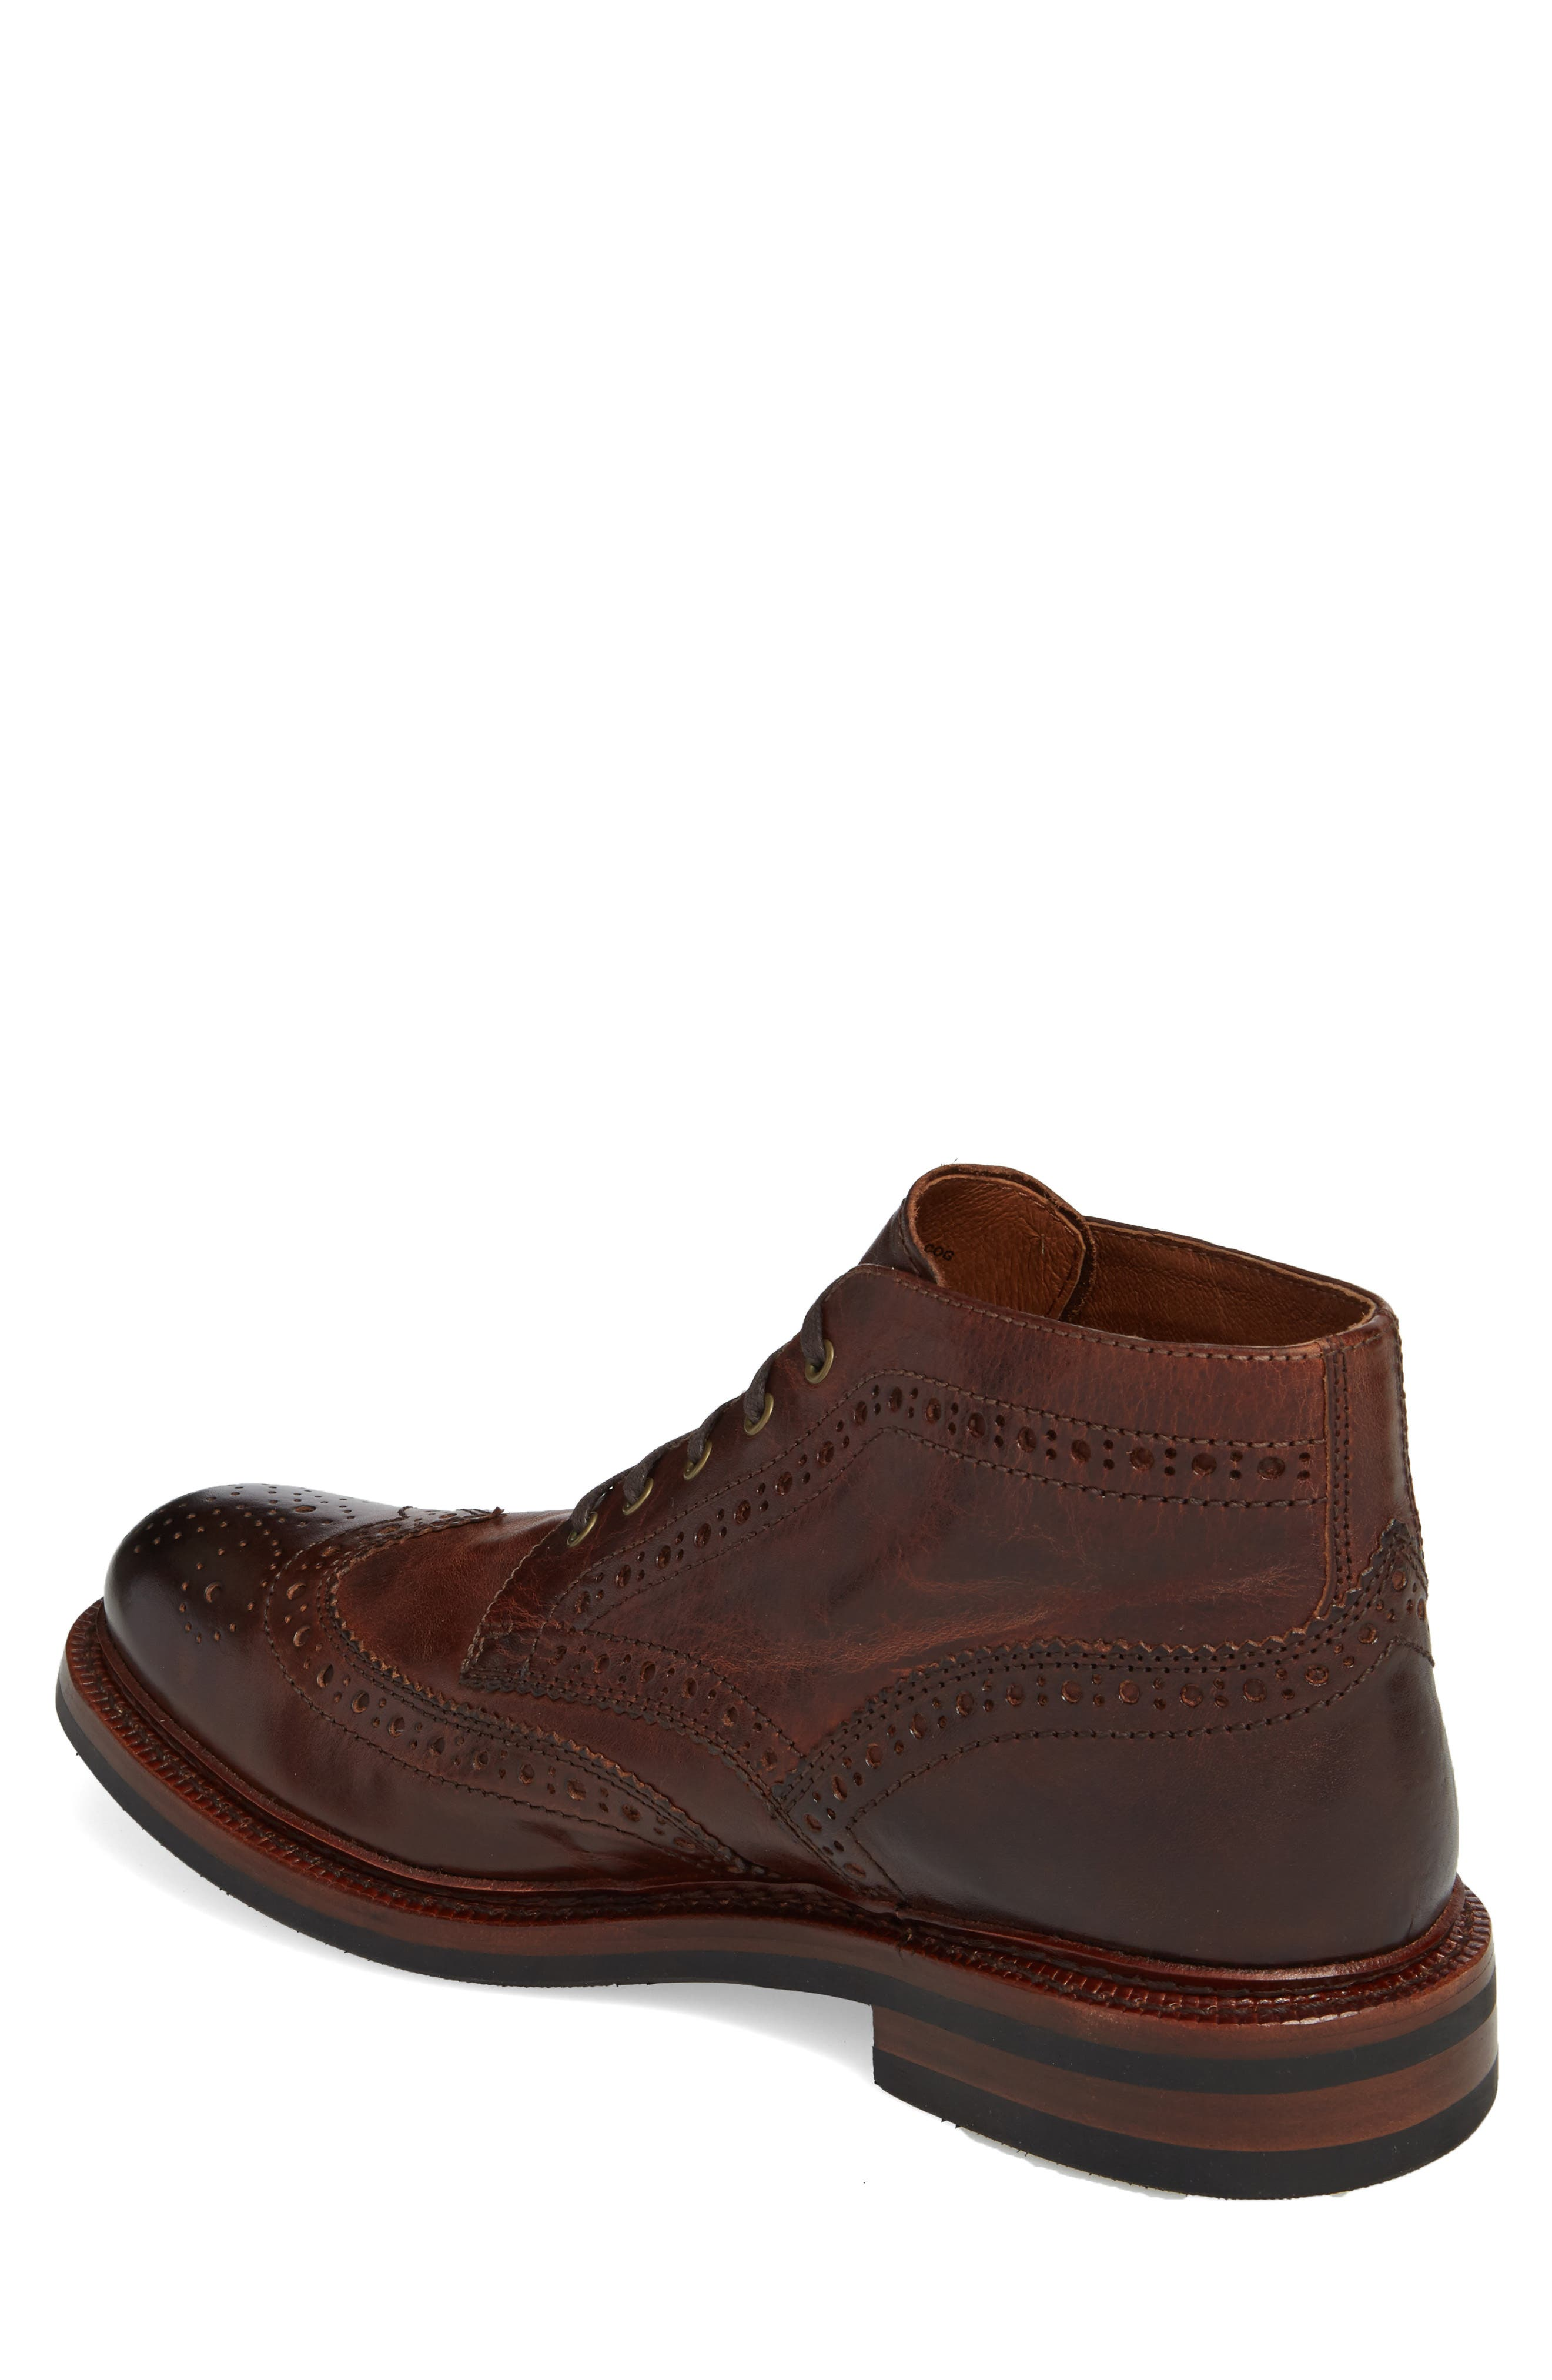 Graham Wingtip Boot,                             Alternate thumbnail 2, color,                             200